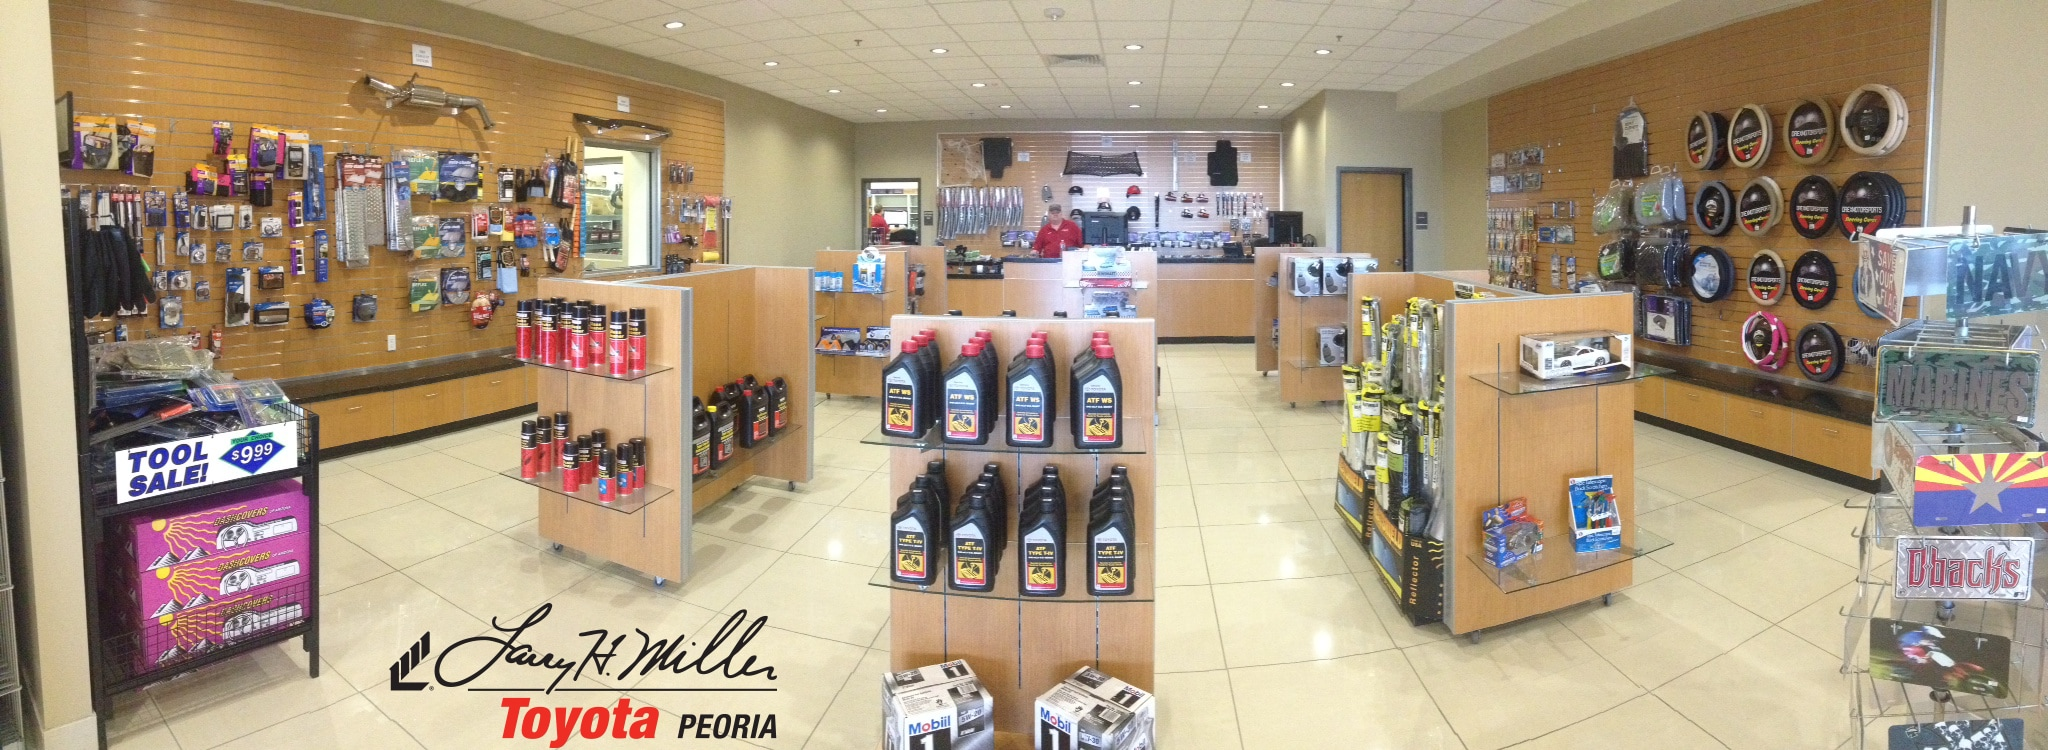 Visit The Larry Miller Toyota Peoria Parts Department For Genuine Toyota  Parts And Accessories